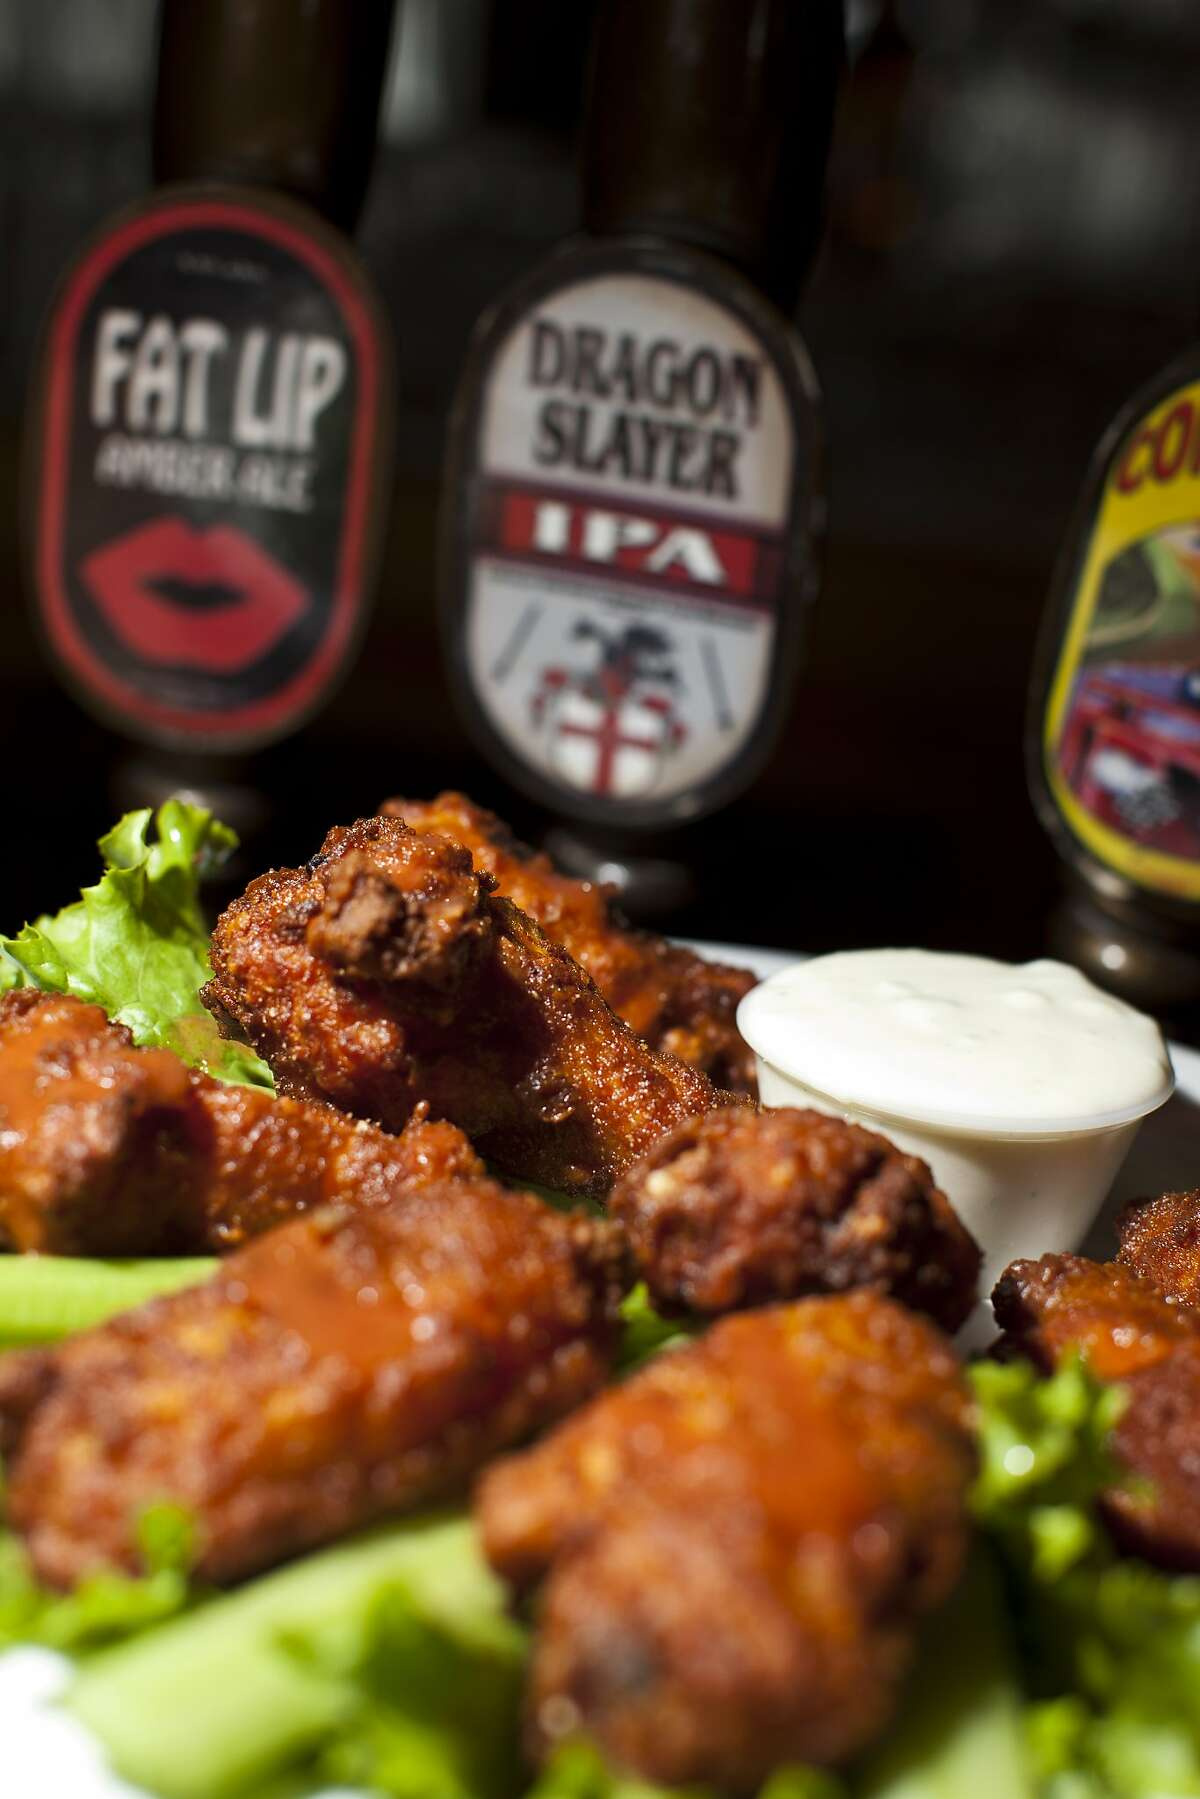 An appetizer of chicken wings at English Ales Brewery and Cafe in Marina, Calif., Tuesday, November 20, 2012.